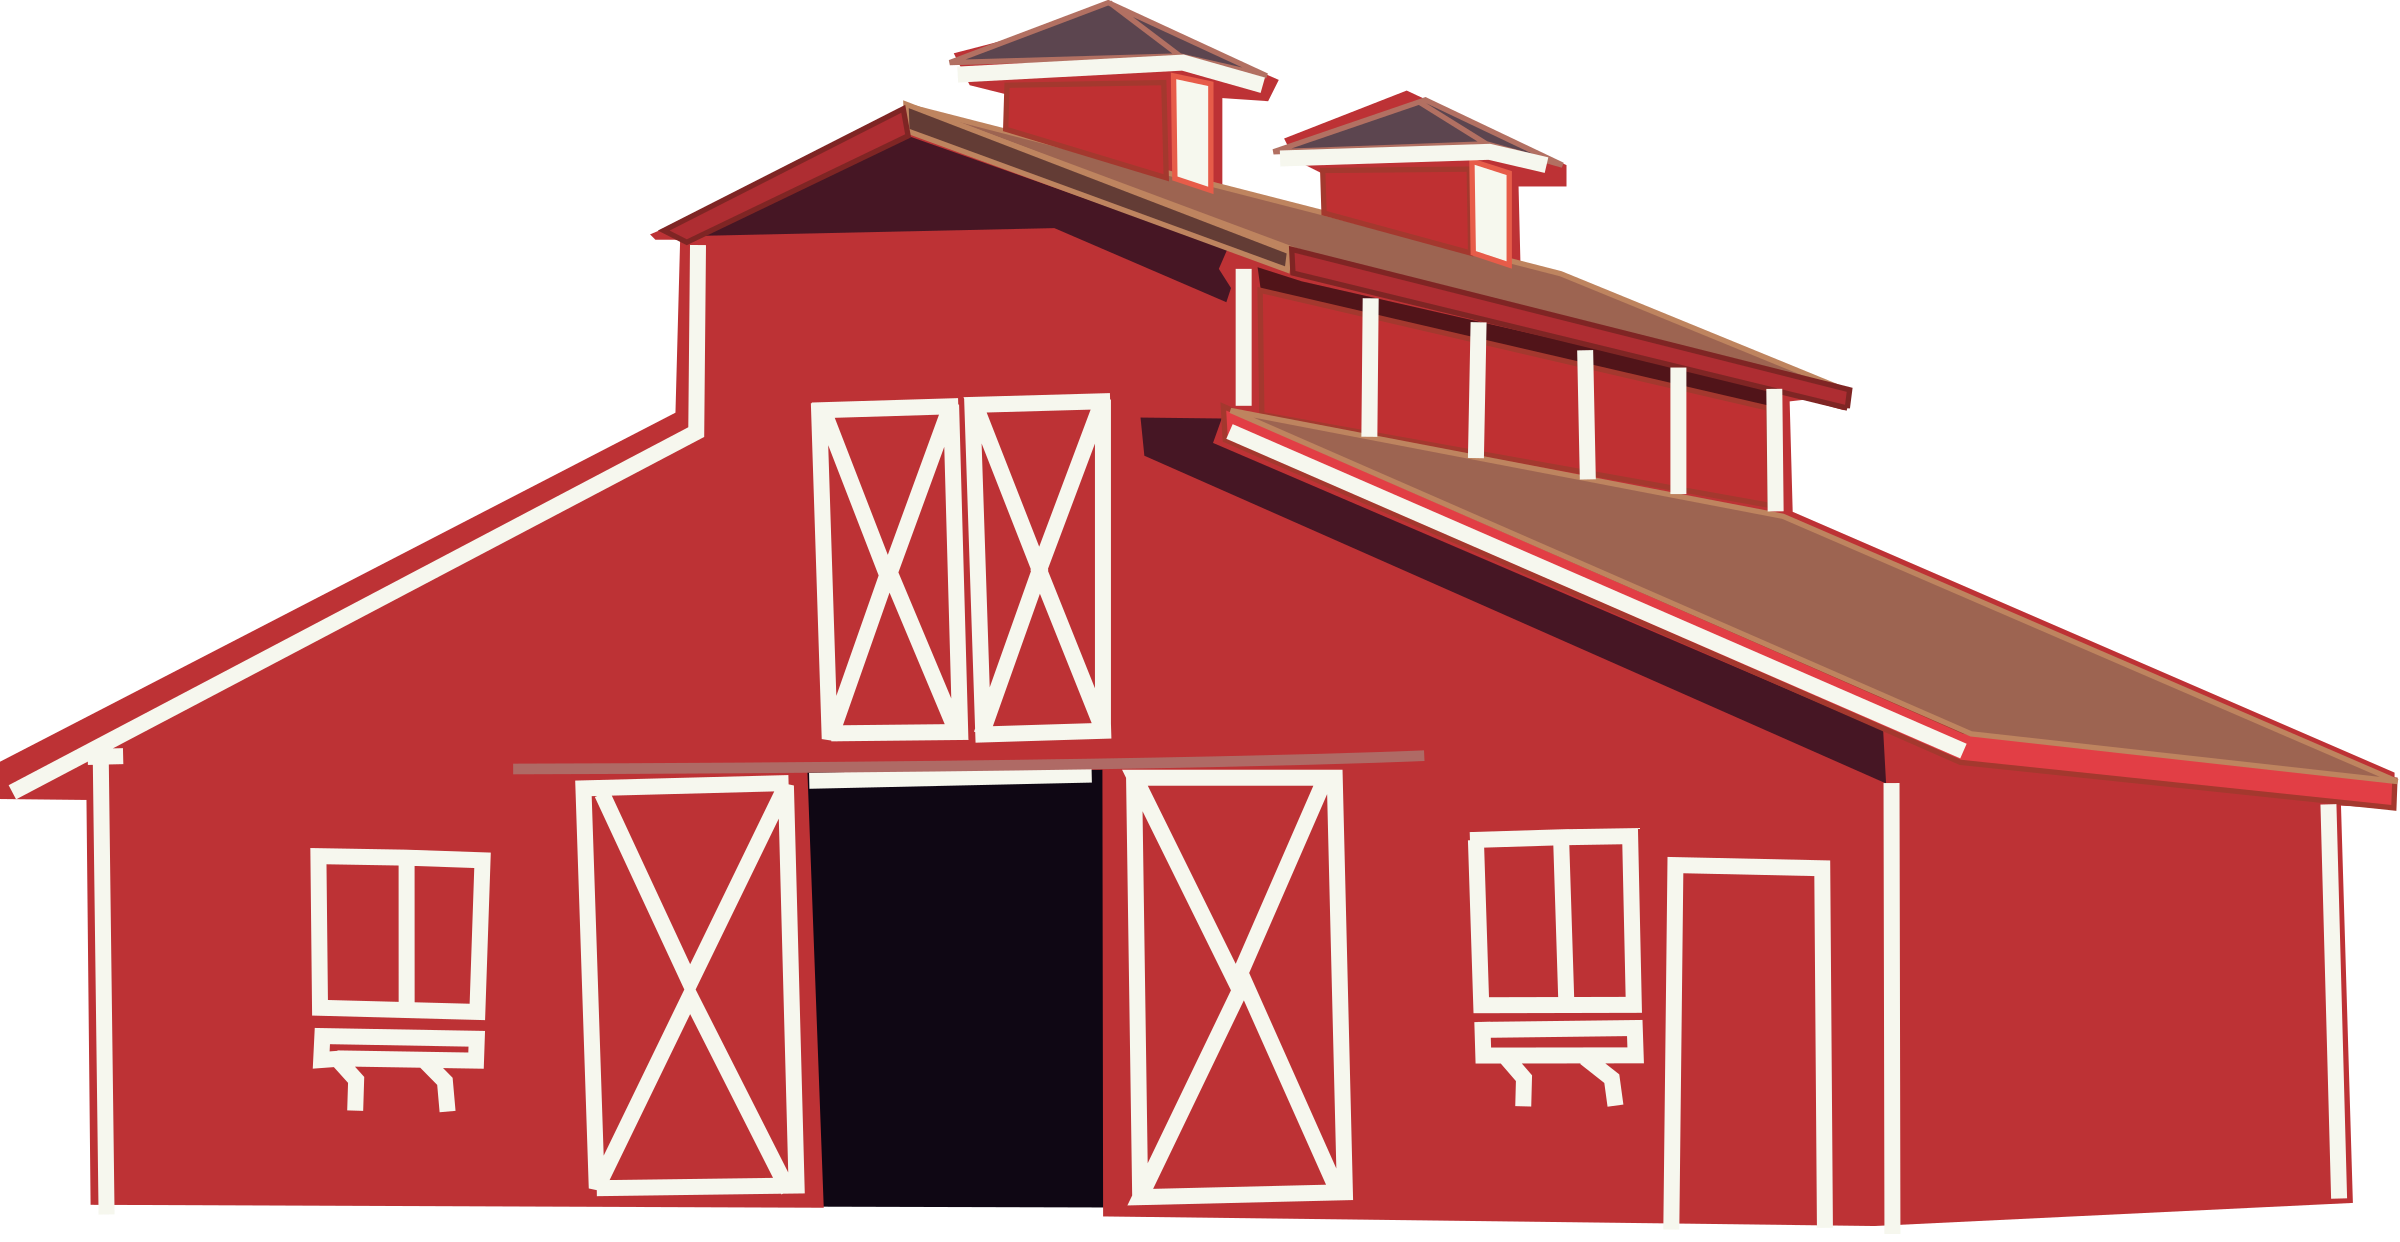 Red Barn Clipart & Red Barn Clip Art Images.